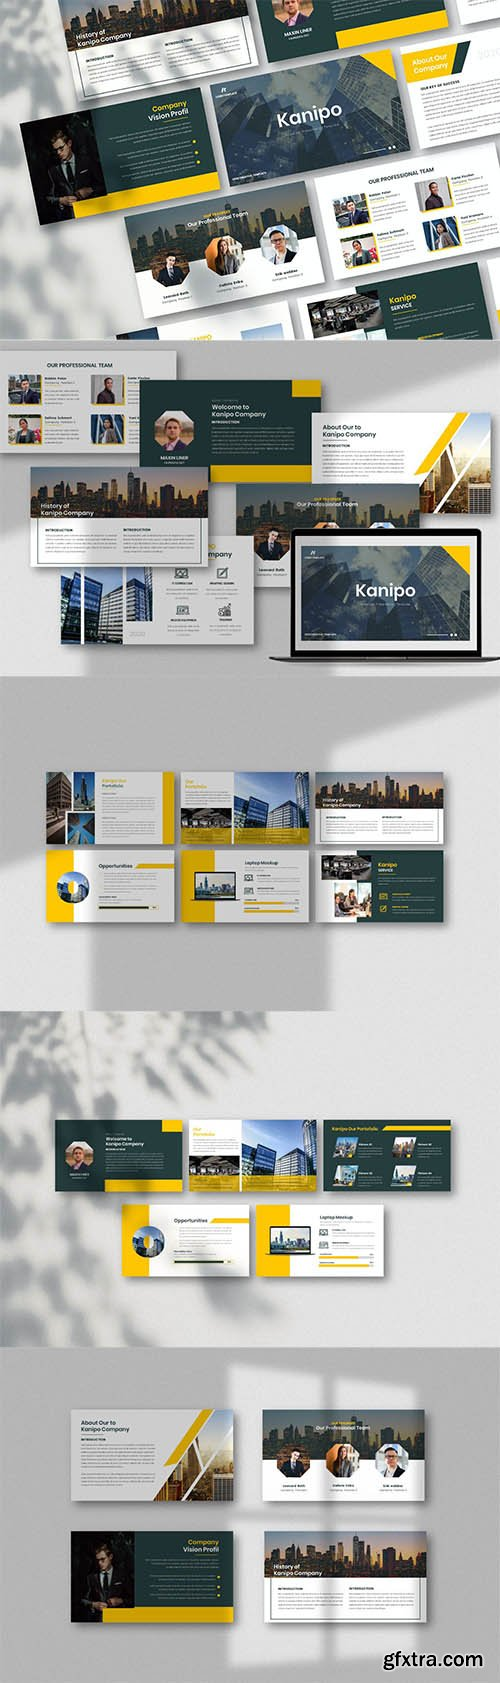 Kanipo-Business Powerpoint, Keynote and Google Slides Template